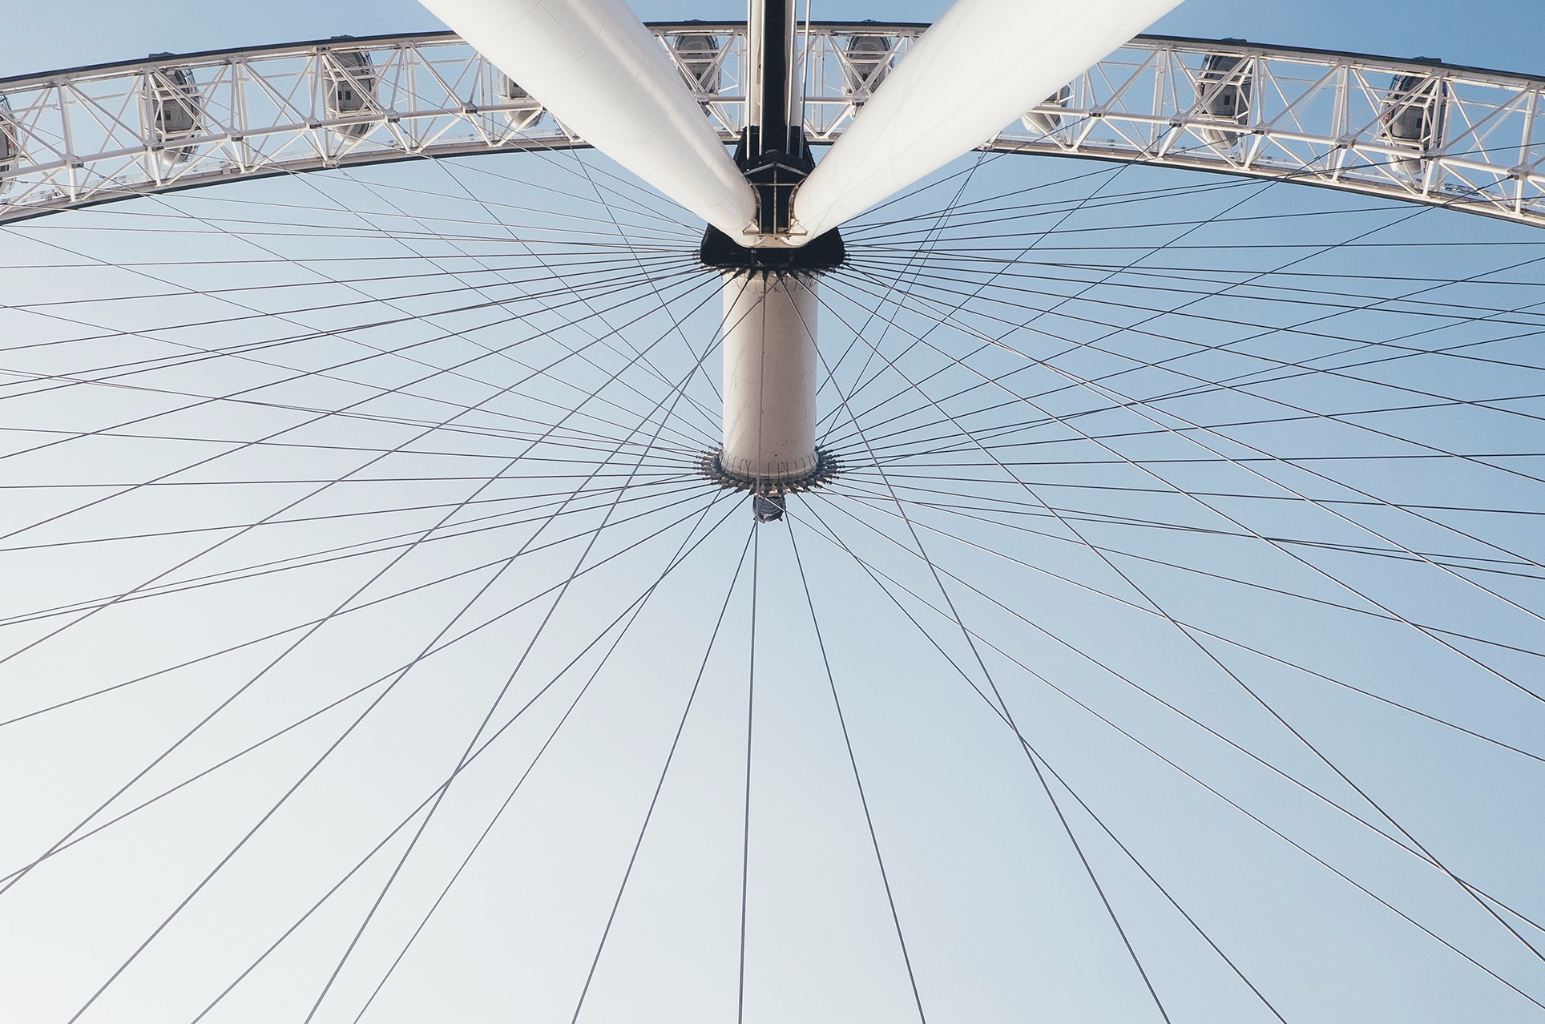 london-eye-londra